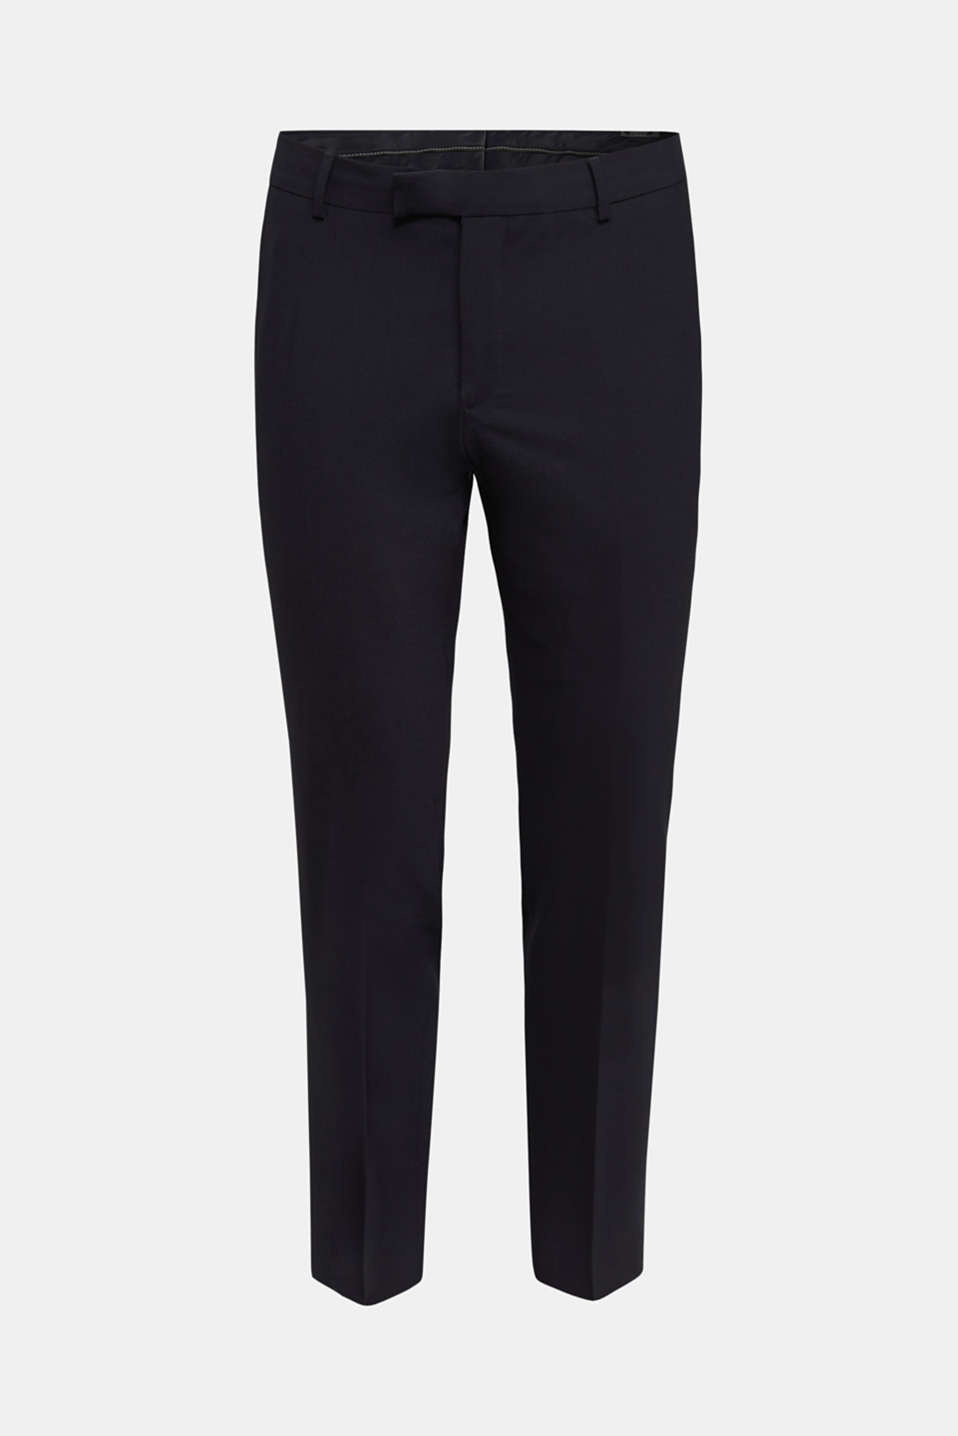 ACTIVE GRID mix + match: Trousers, DARK BLUE, detail image number 7